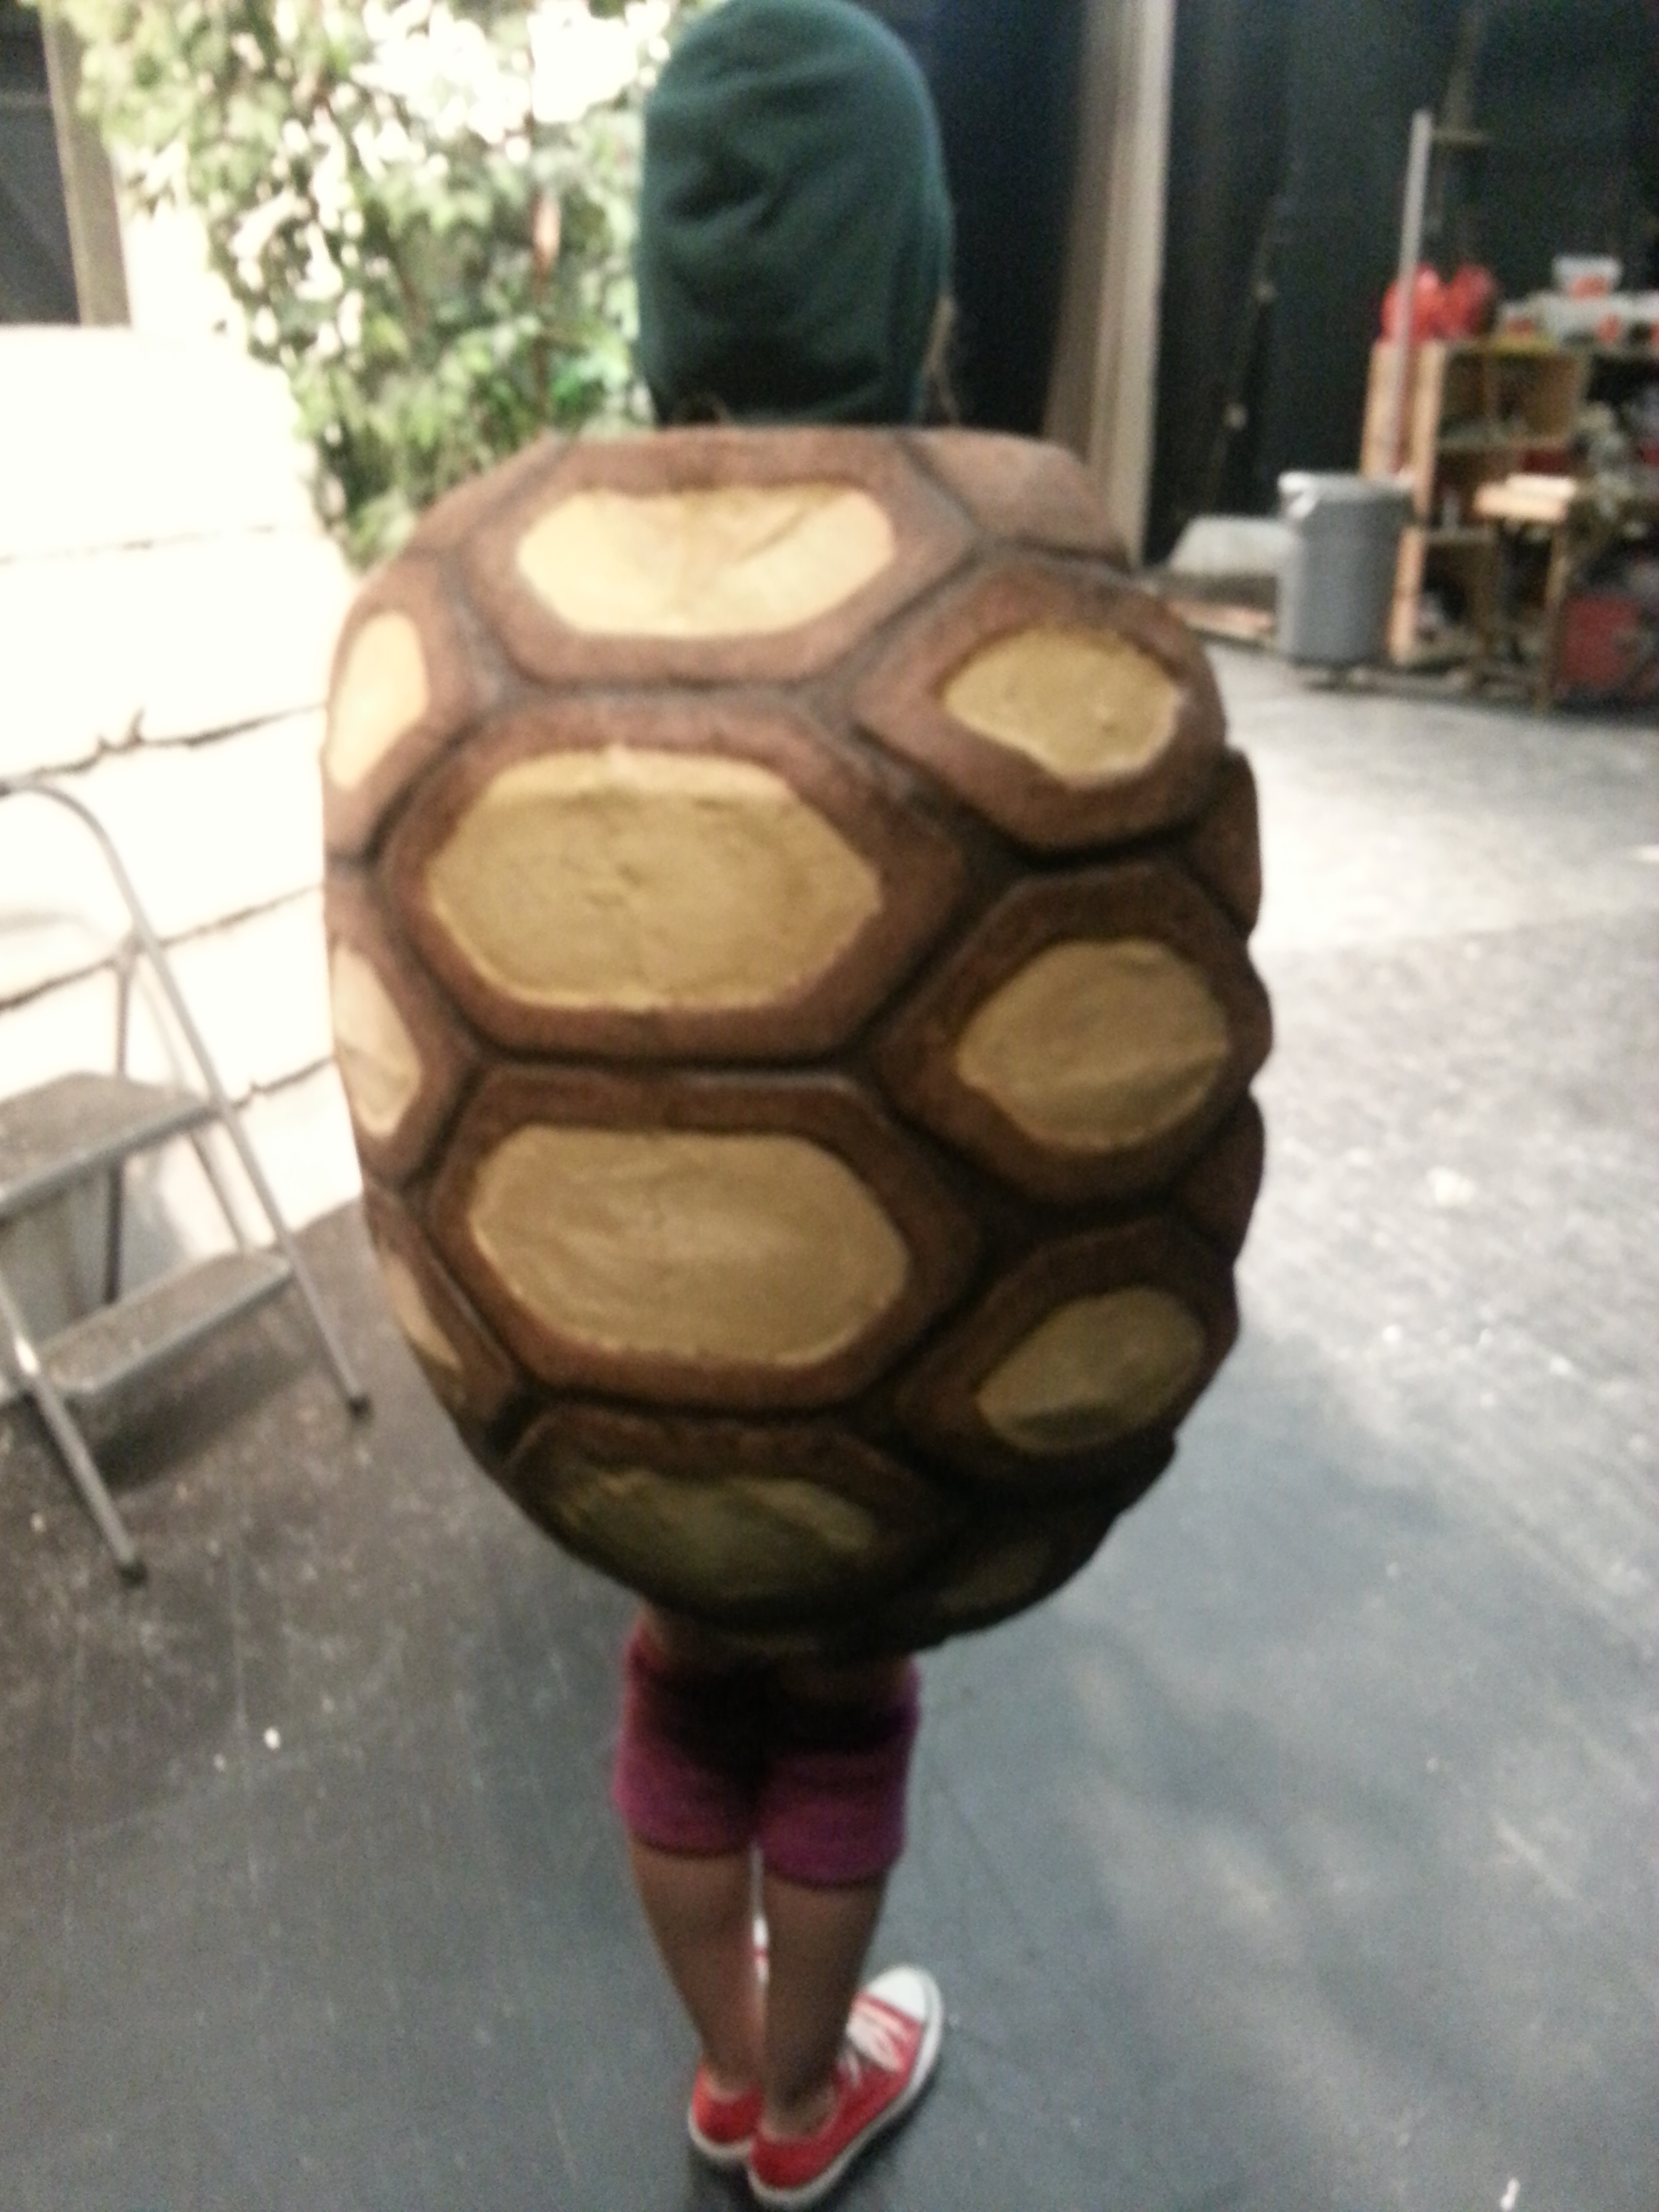 Tortoise Shell costume for youth theater production